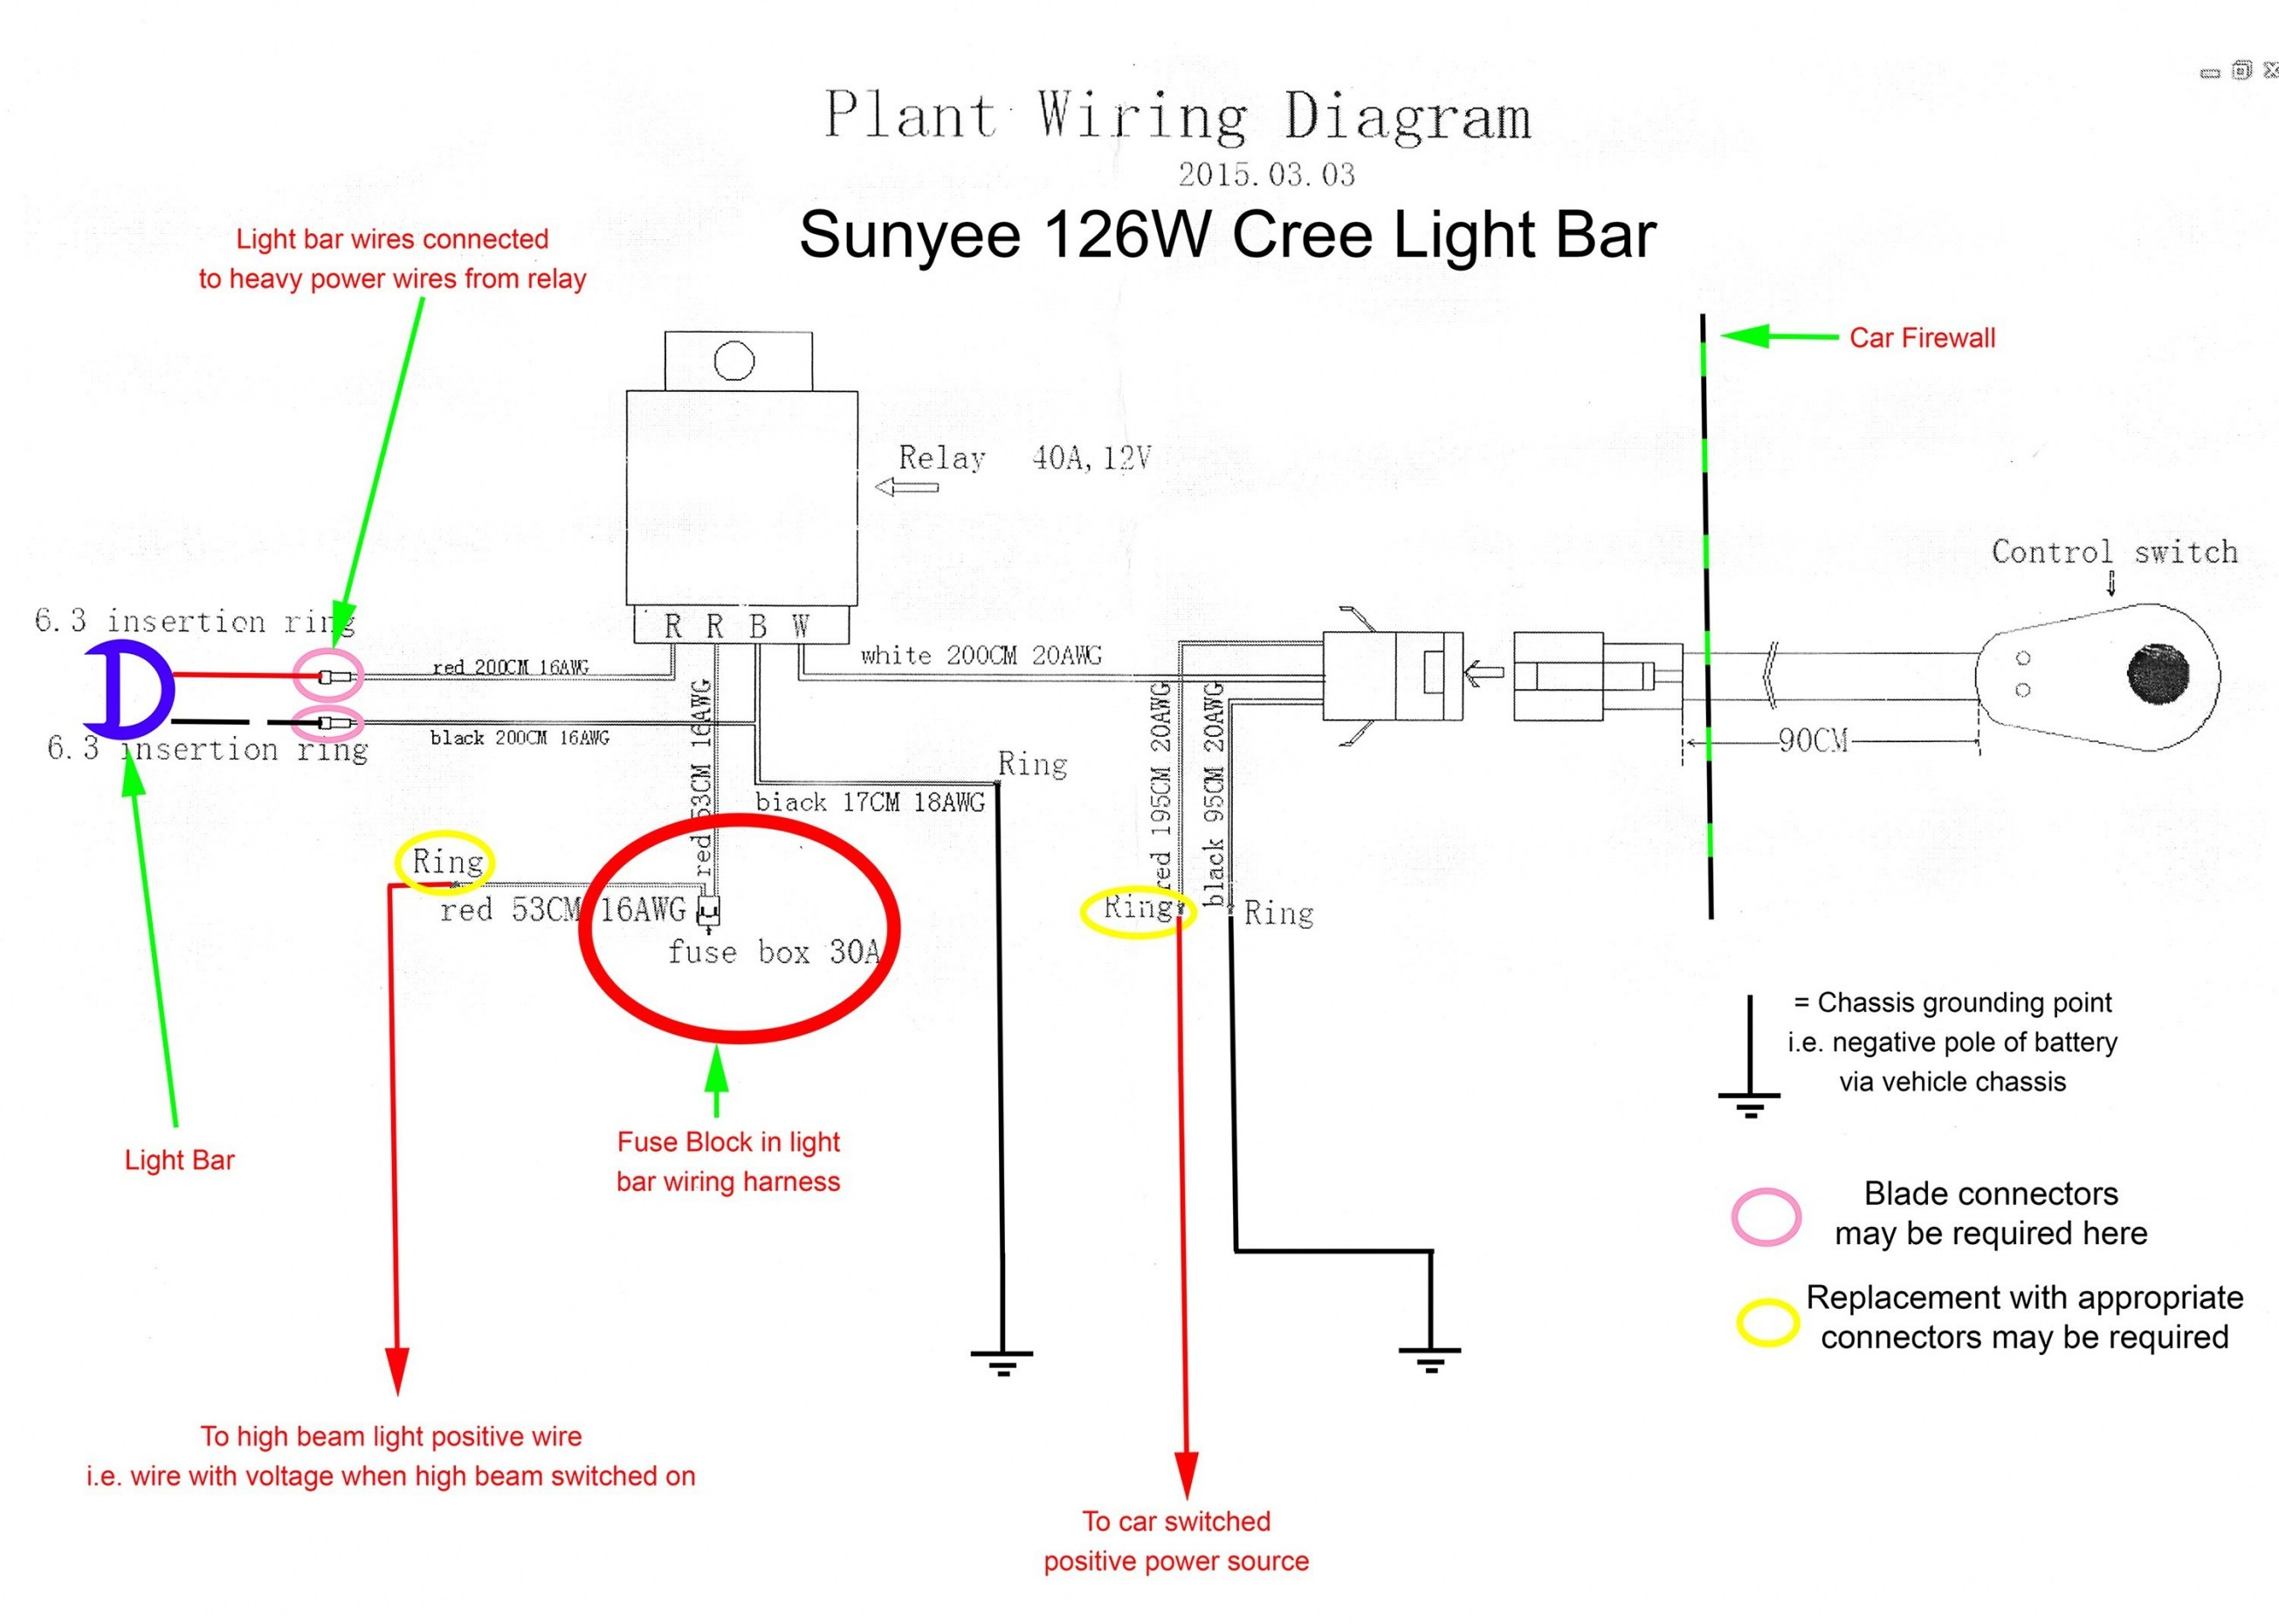 daisy chain pot lights wiring diagram ear anatomy labeled led christmas light 3 wire sample download diagrams for 6 recessed lighting in